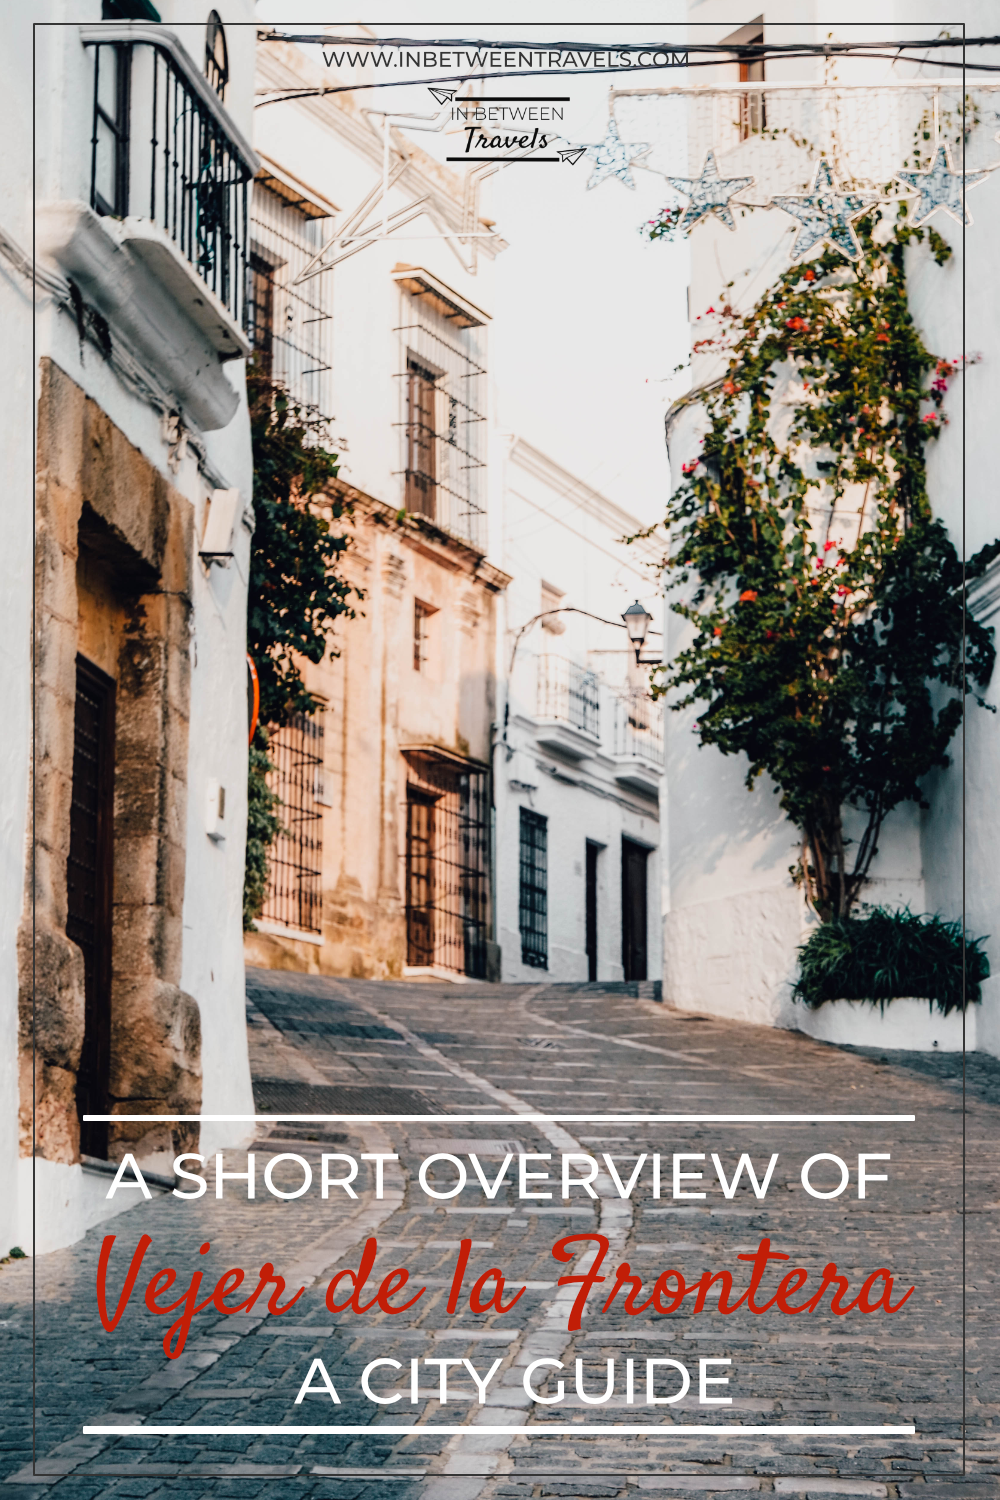 Vejer de la Frontera, City Guide